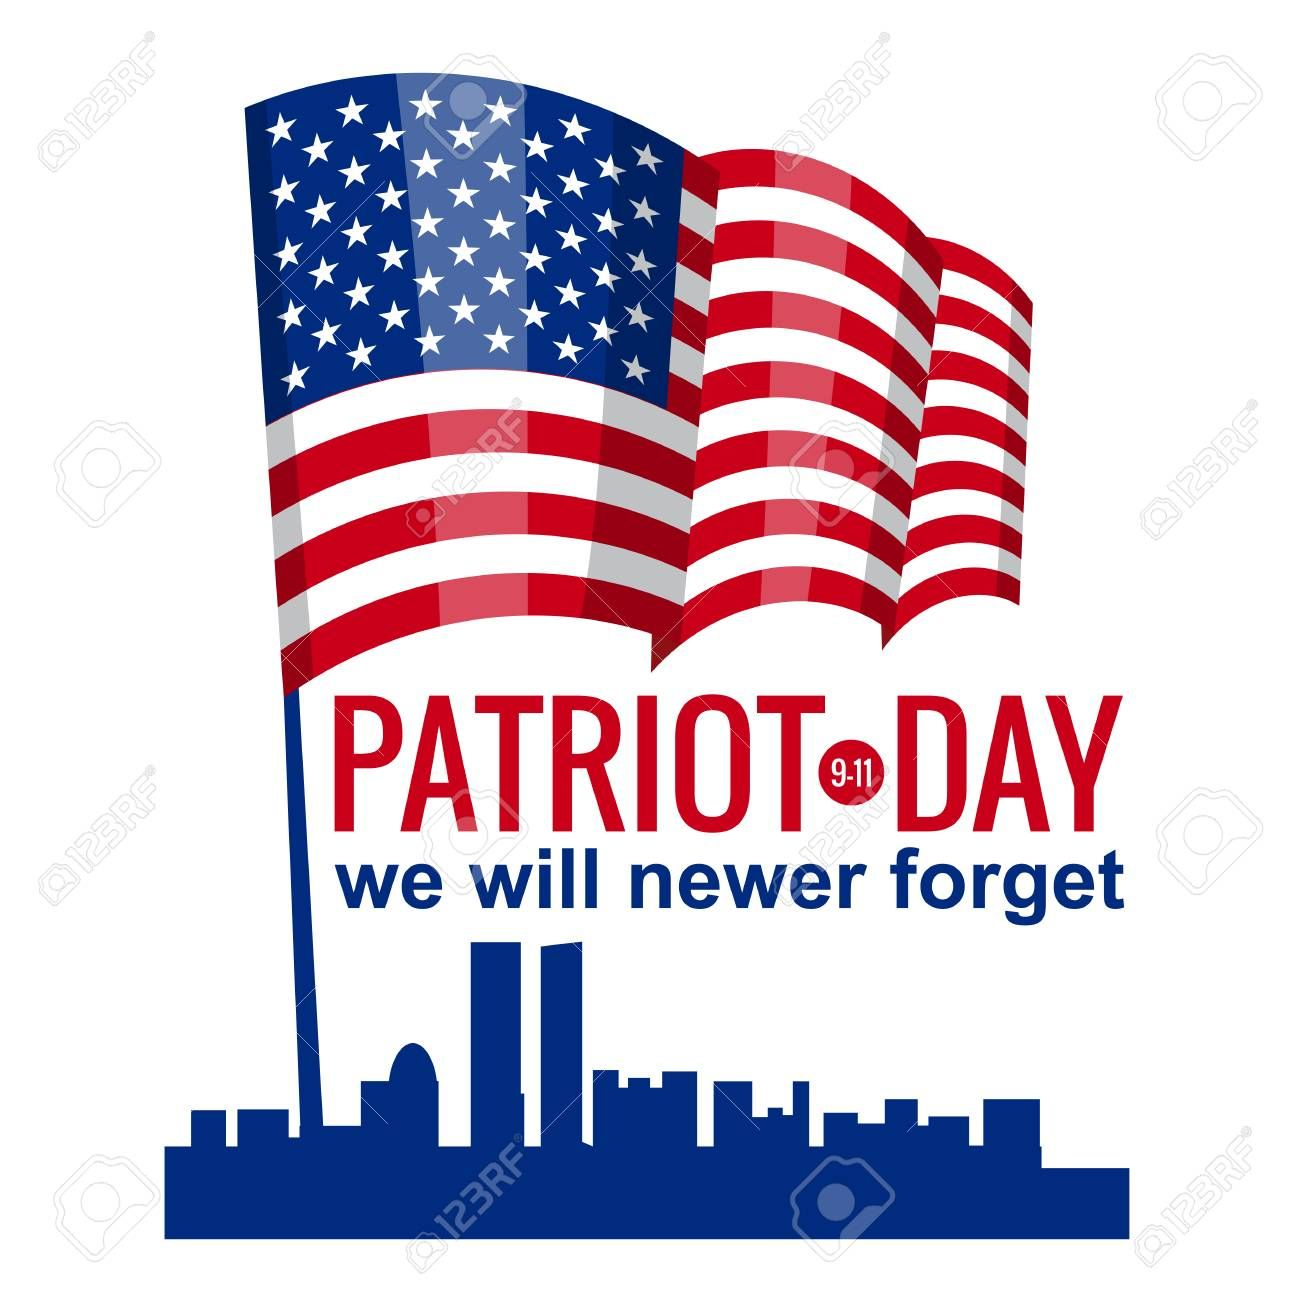 Patriot Day September 11 We Will Never Forget Illustration Spon September Day Patriot Illustration Forget Day Patriots Day Logo Food